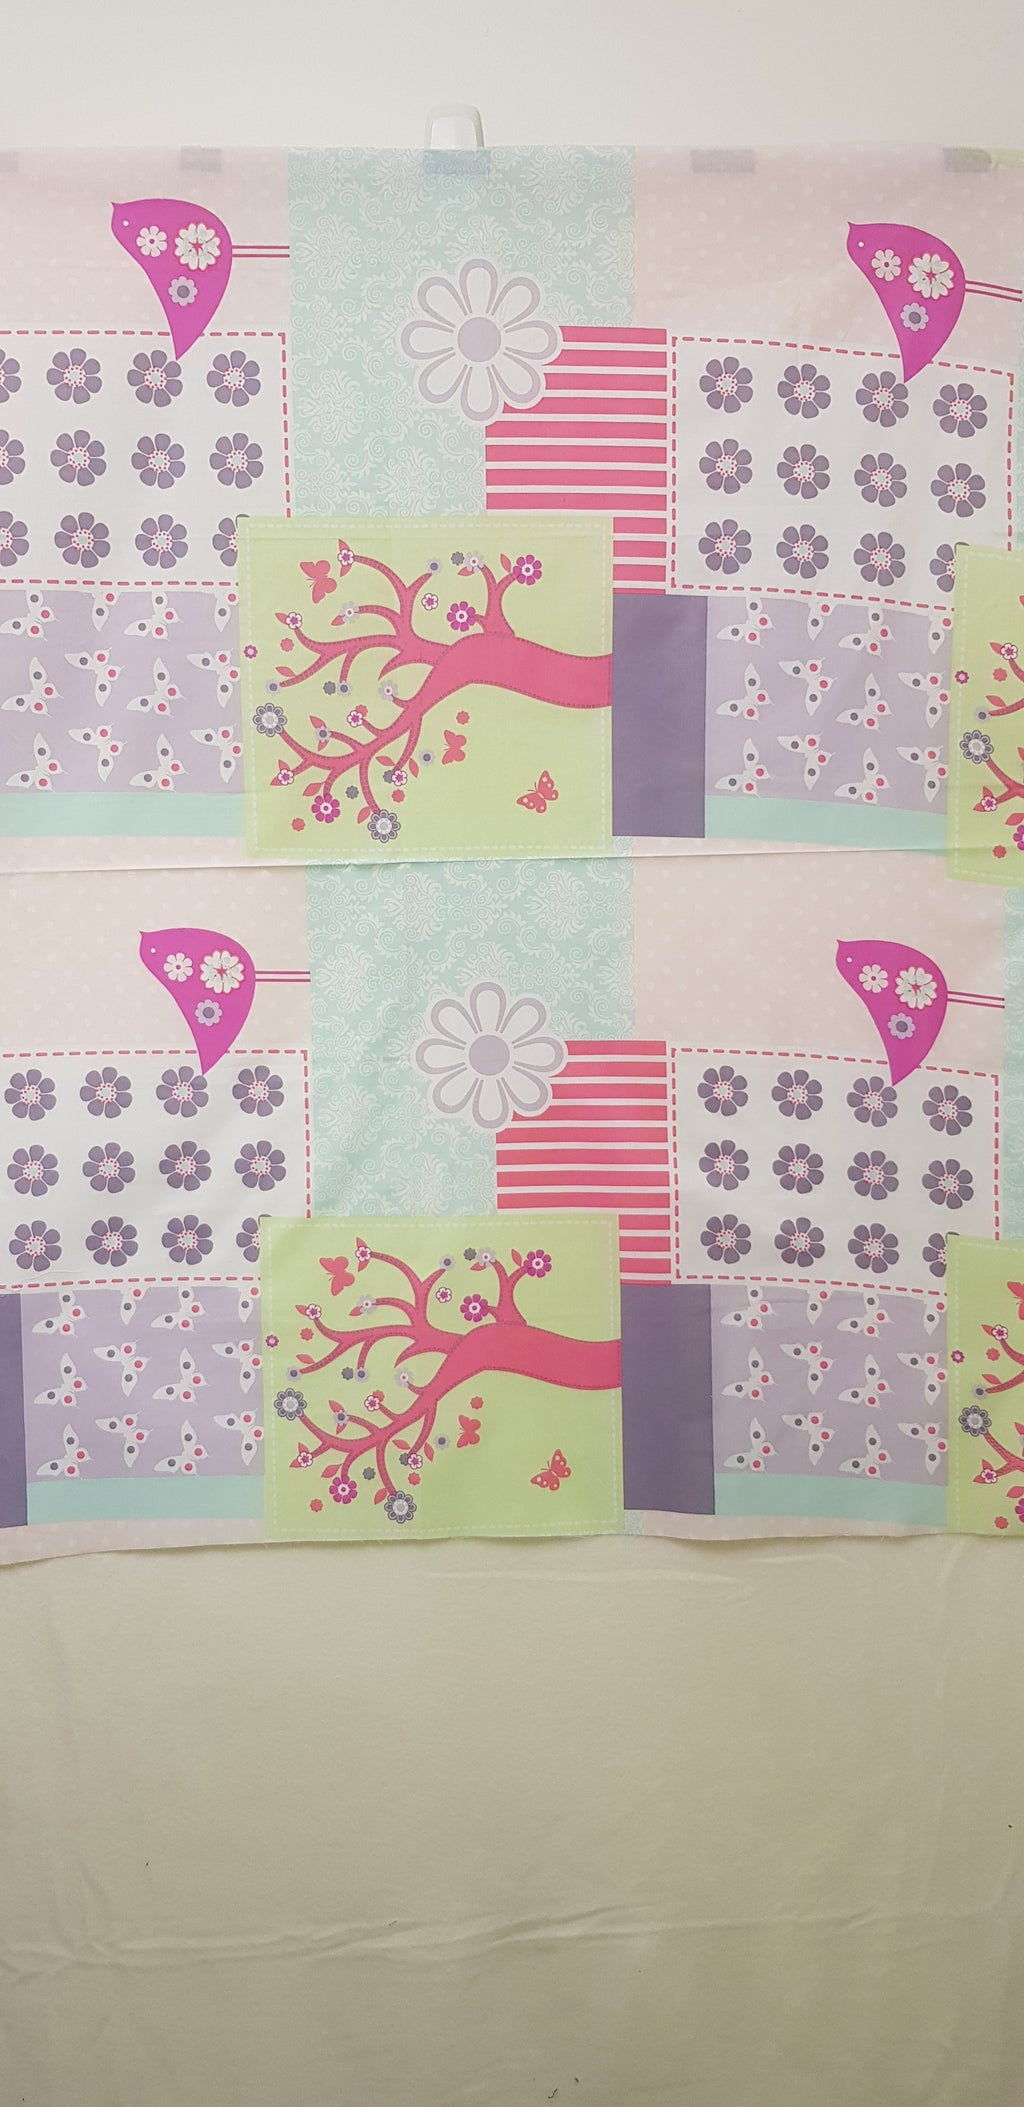 Girls Butterflies & Floral Fabric (2pc - 106x120cm & 106x59cm) - Lori's Fabrics & Quilts